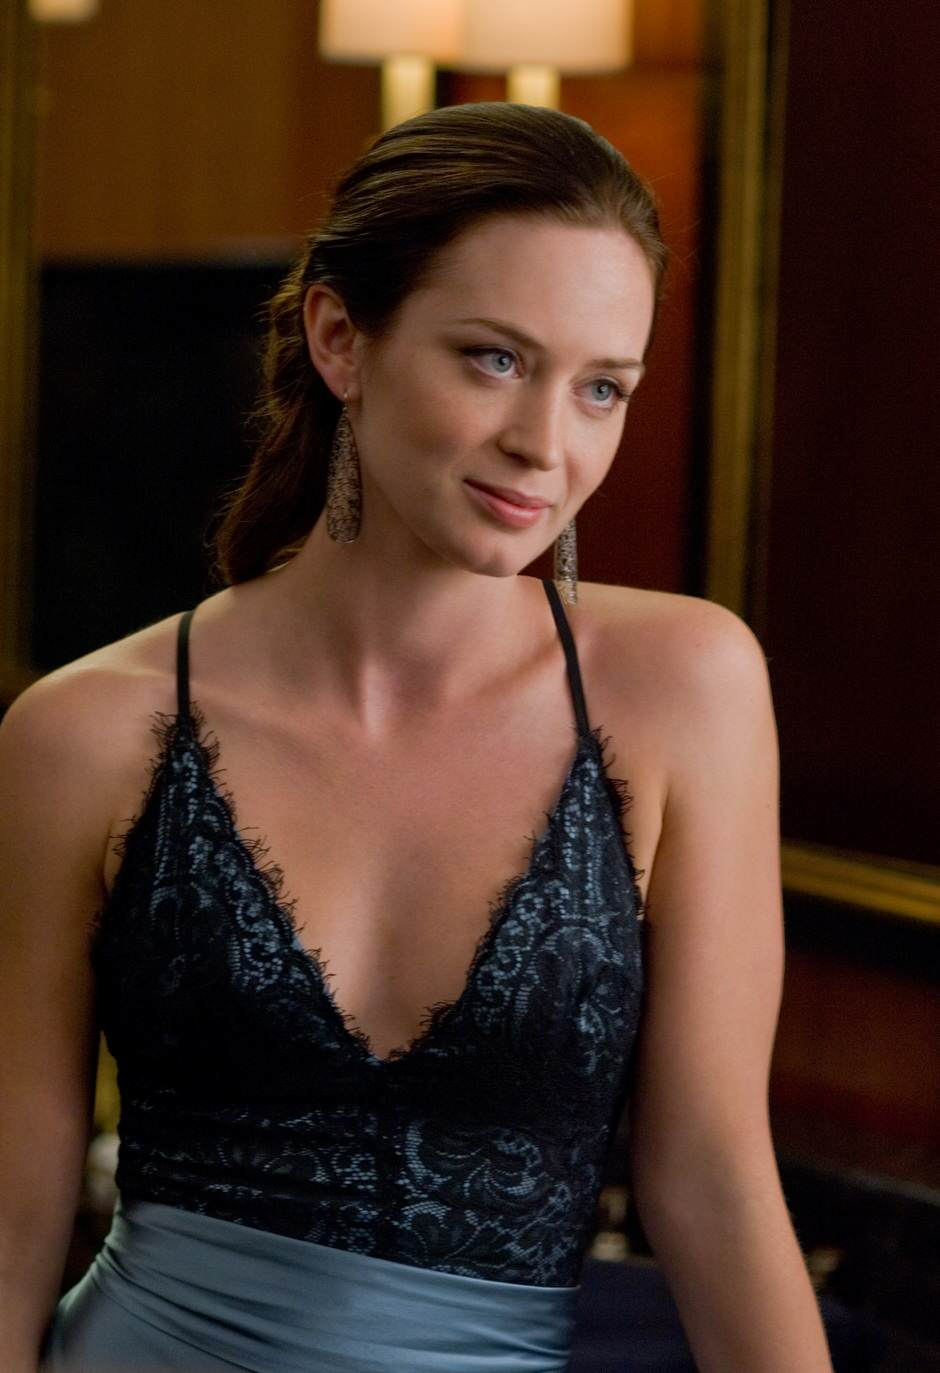 emily-blunt-topless-pics